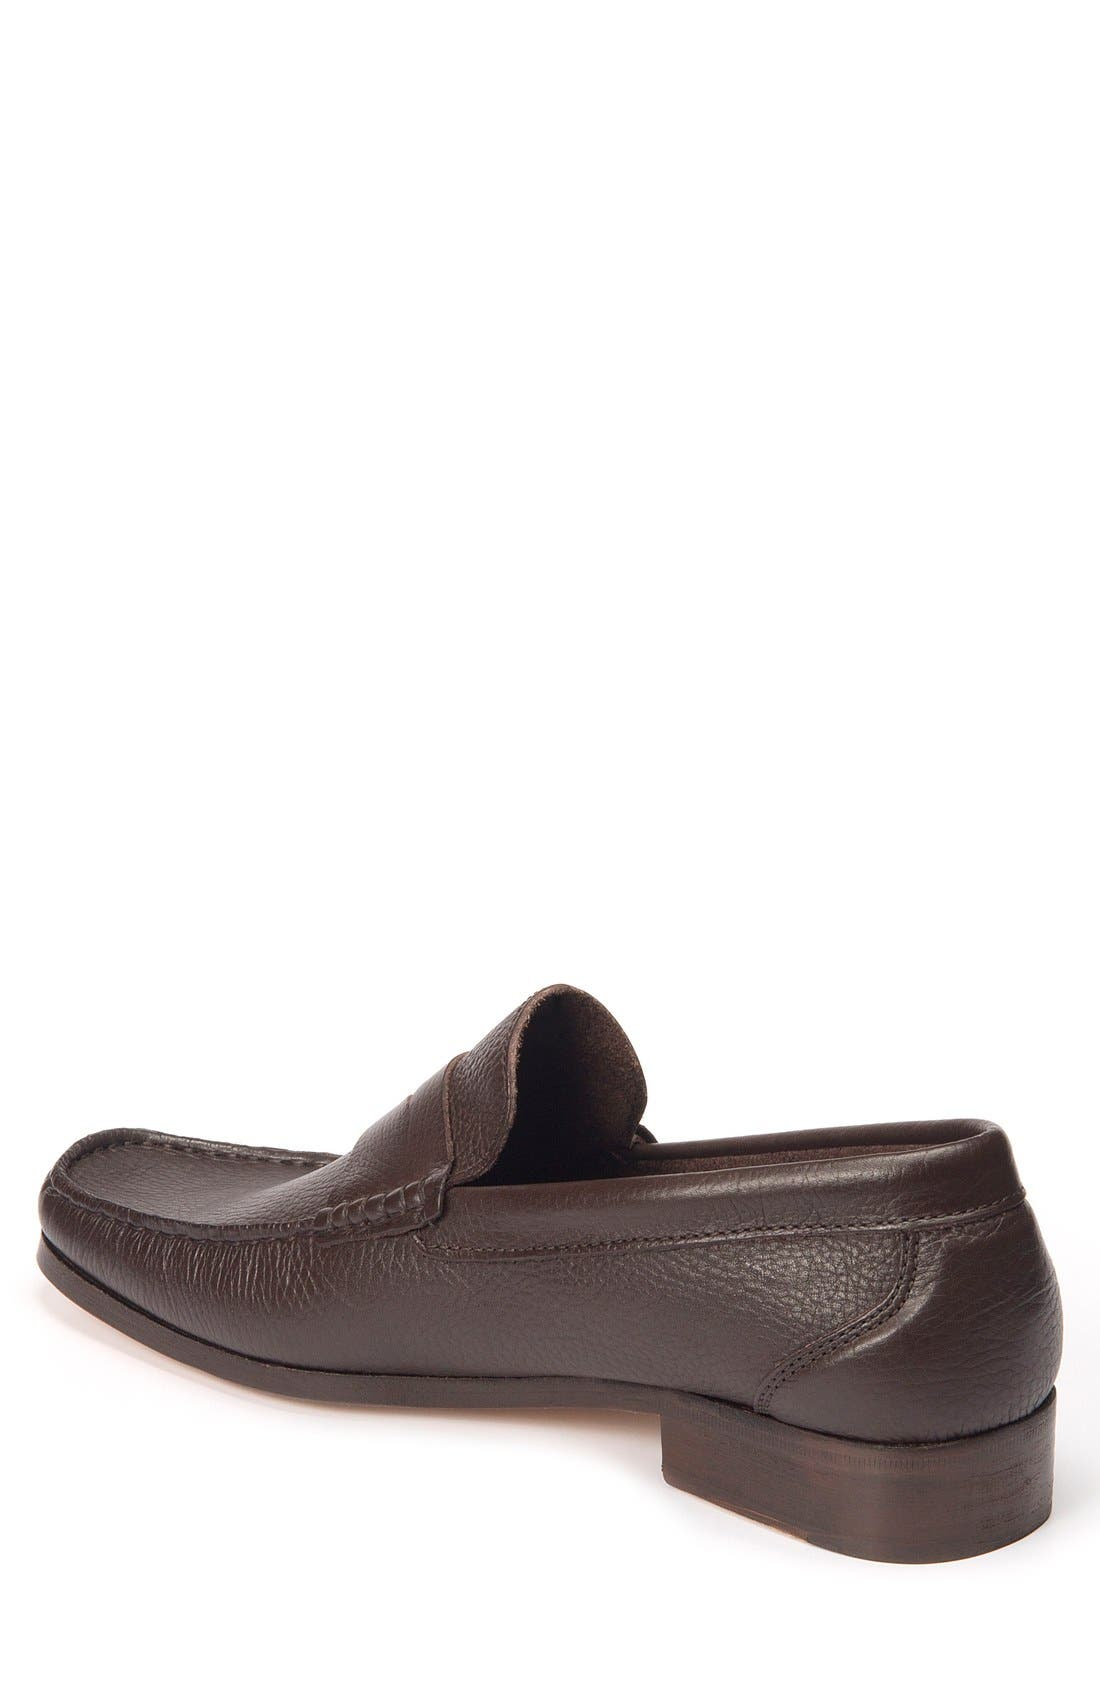 Alternate Image 2  - Sandro Moscoloni Segovia Penny Loafer (Men)